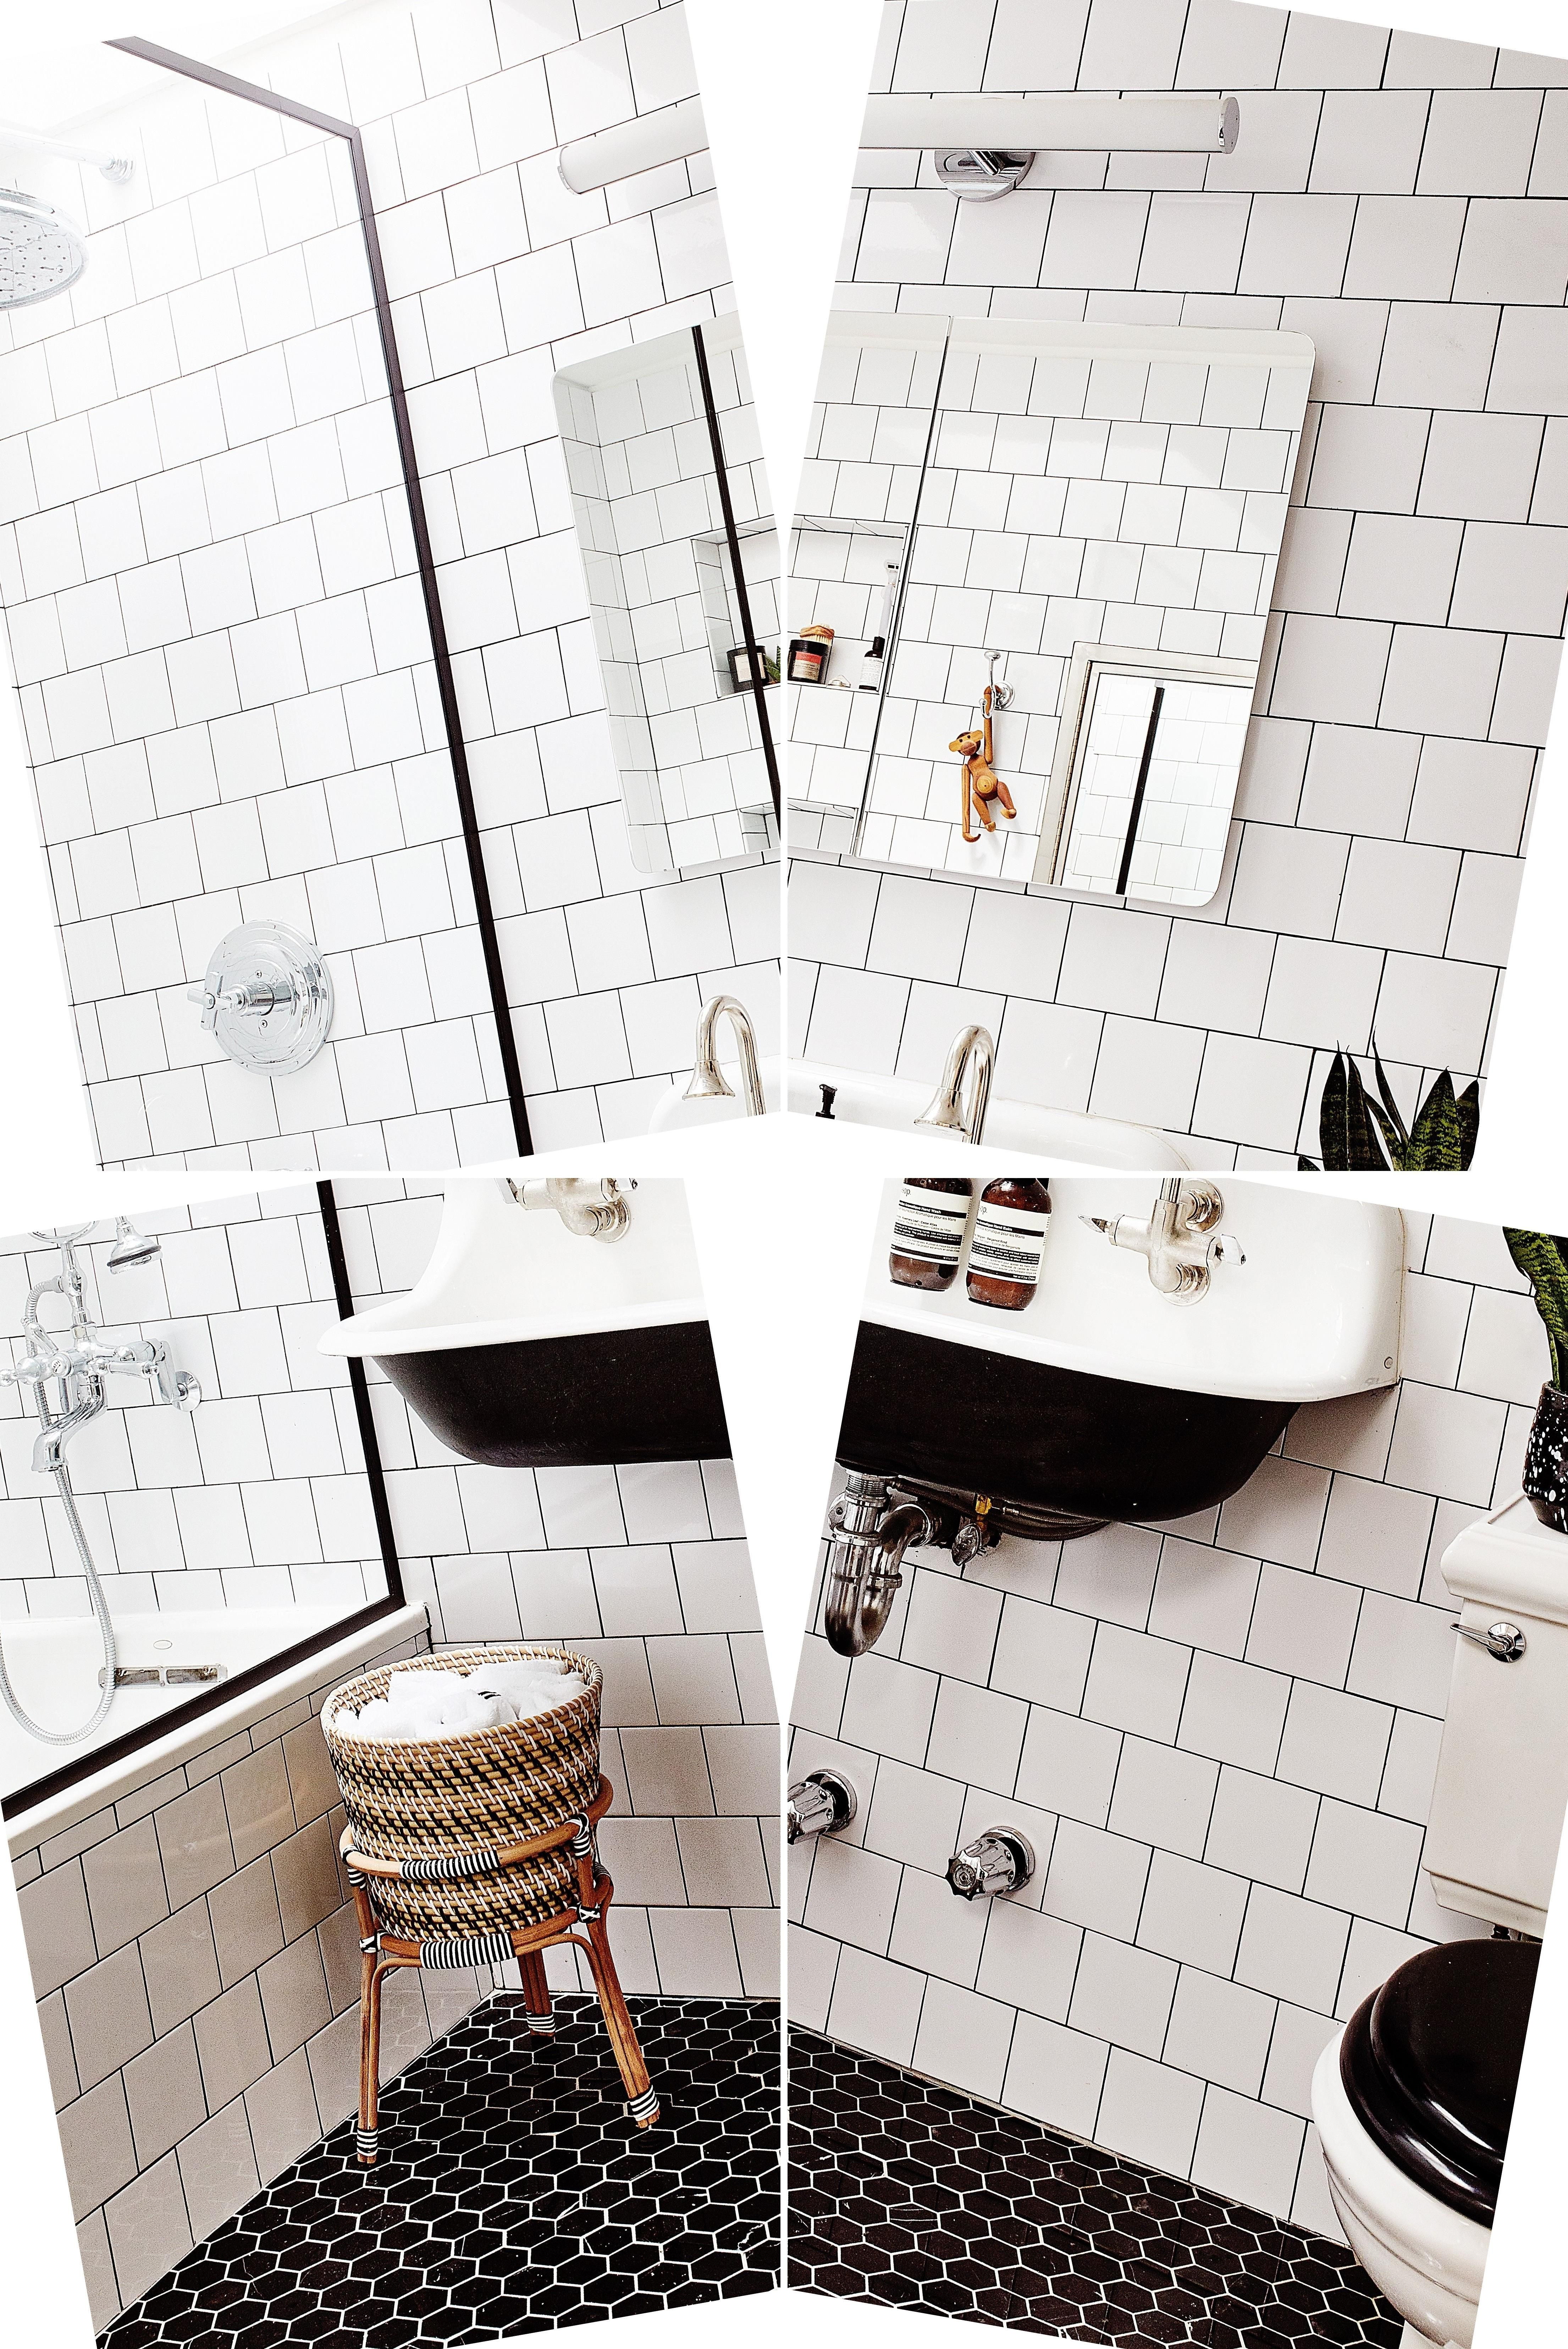 Pink and Black Bathroom Decor Awesome toilet Decoration Accessories